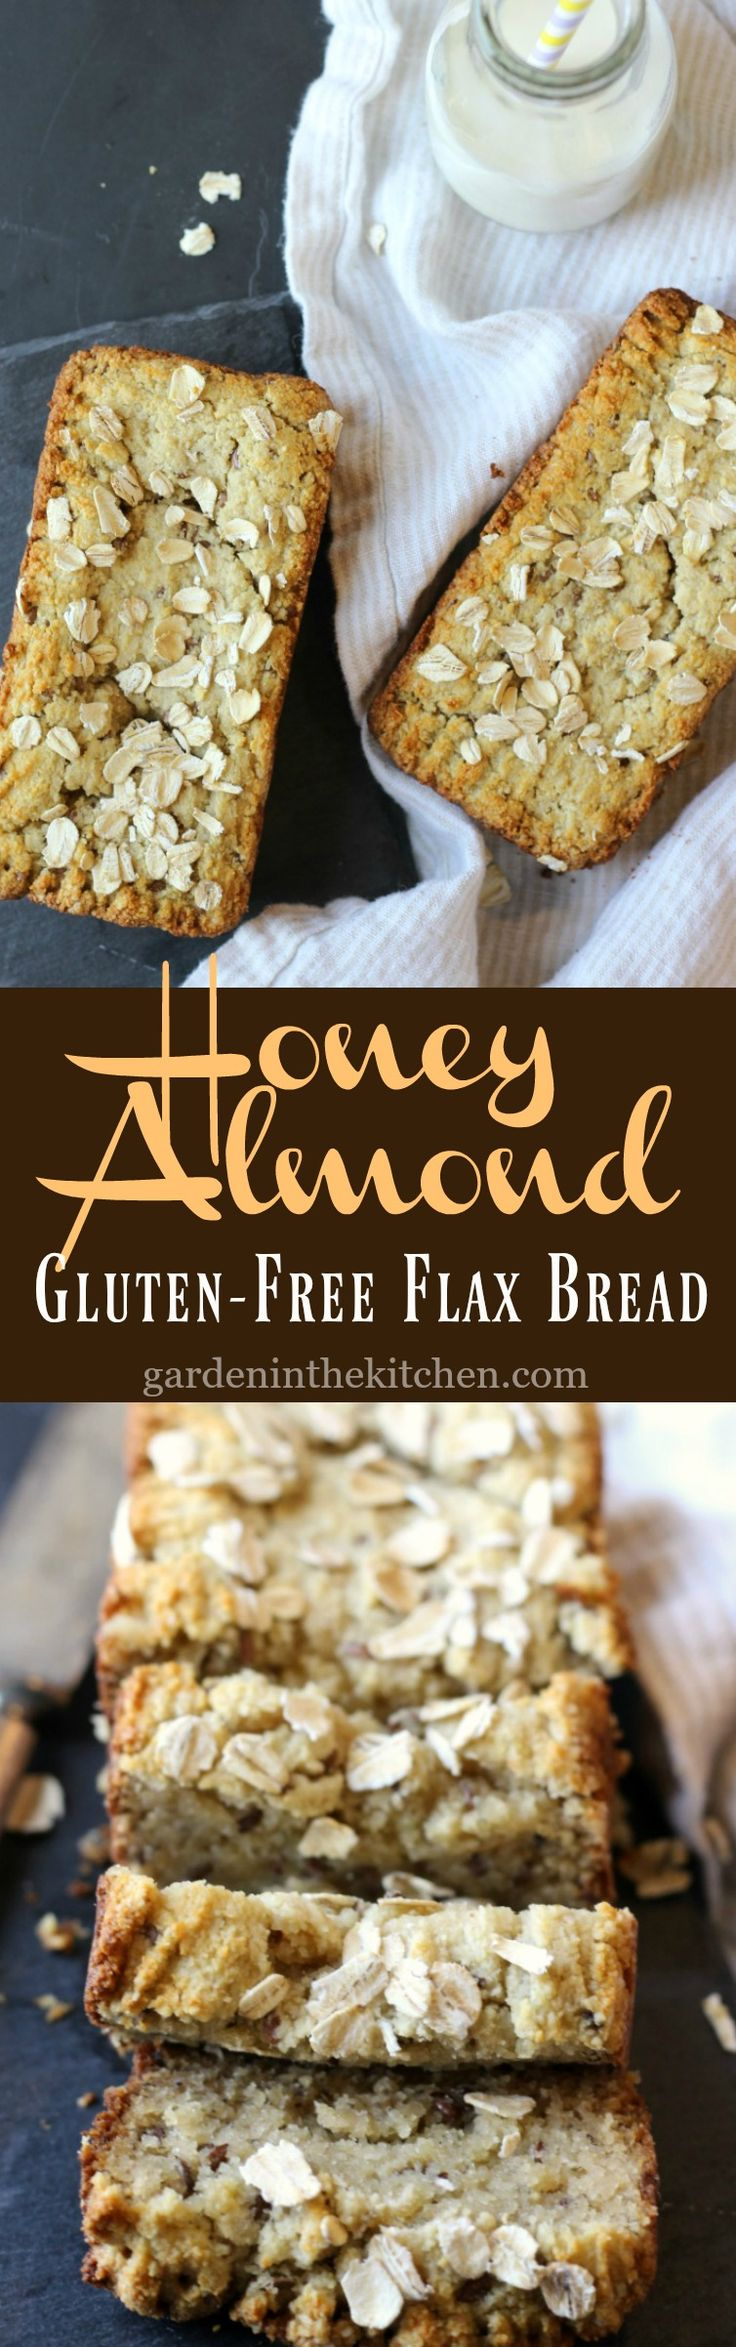 Honey Almond Gluten-Free Flax Bread | Garden in the Kitchen